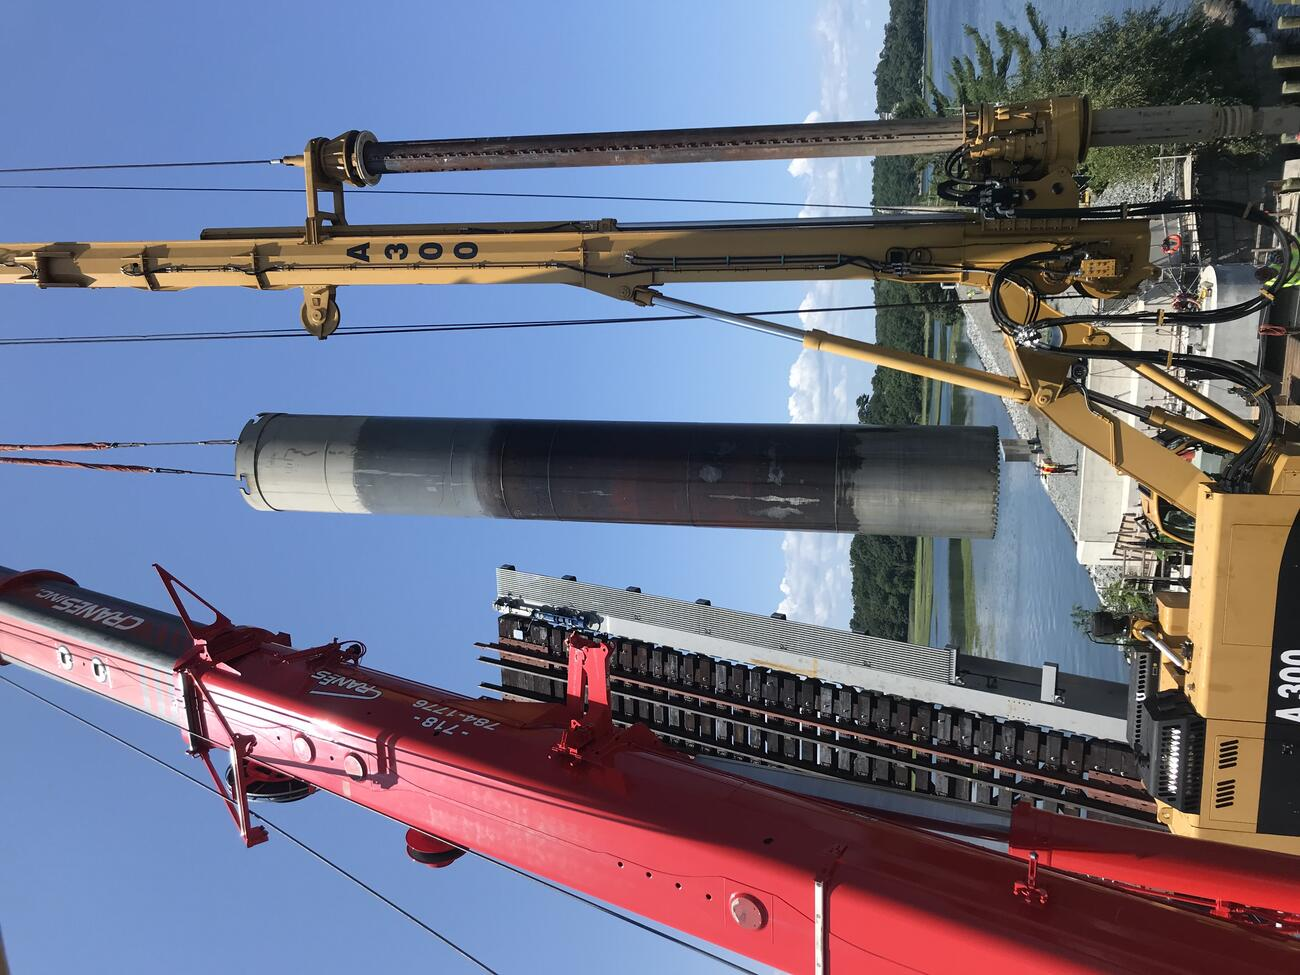 In the foreground, red and yellow cranes suspend one of the northern shafts during installation. In the background, a worker stands on the bridge facing the shaft as it hangs in midair, all against a backdrop of water, tree-covered shoreline, and blue sky.